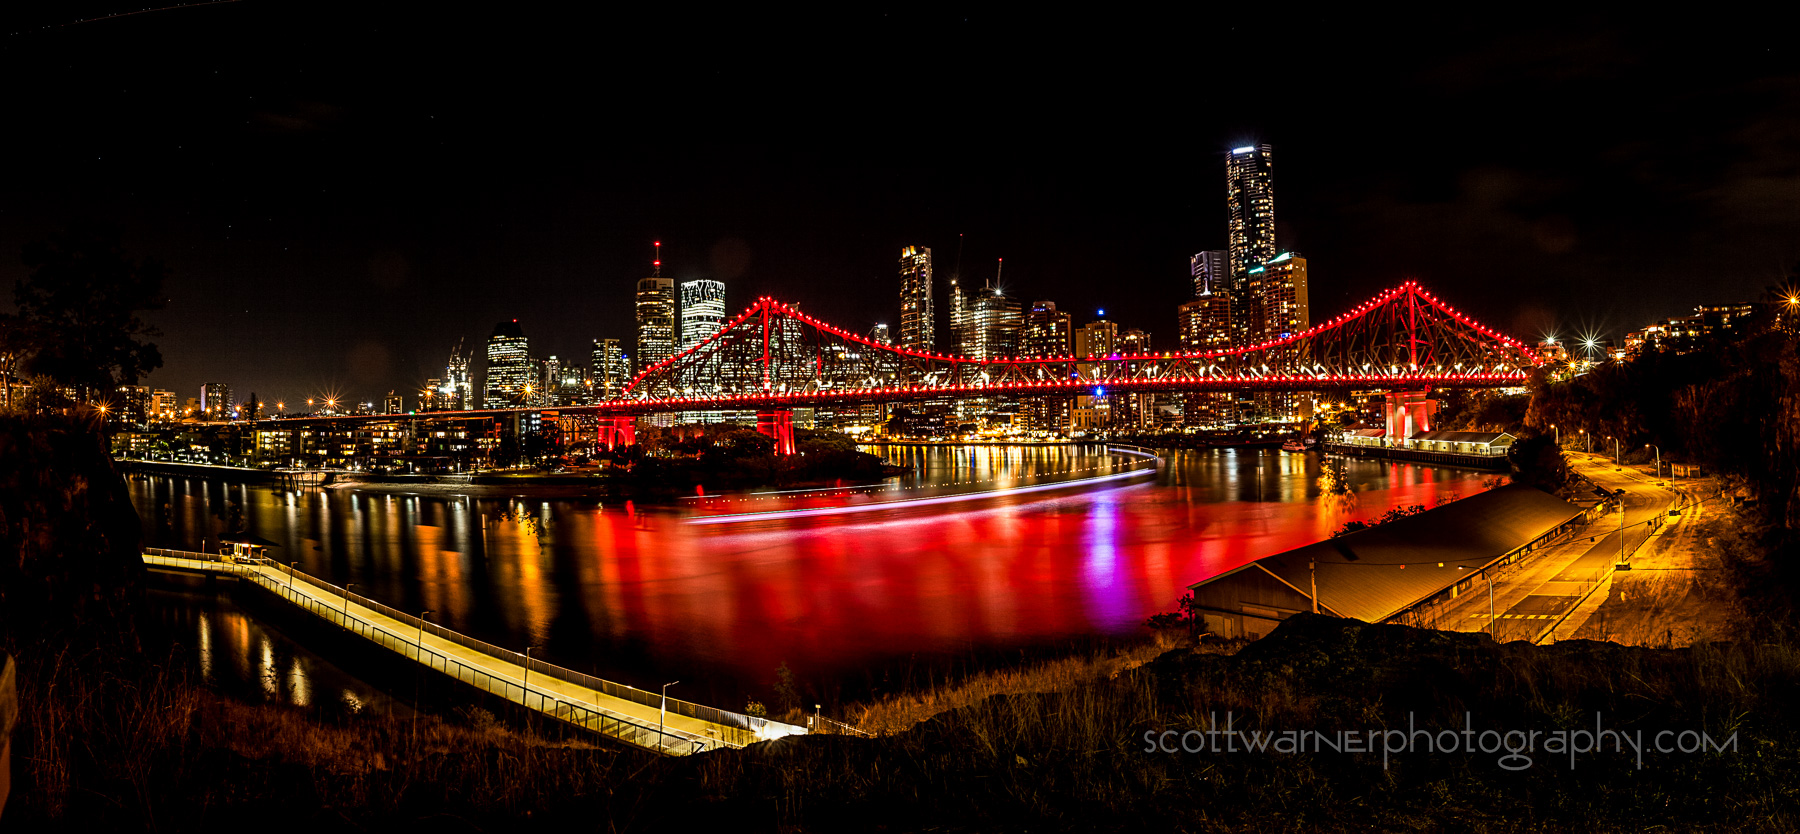 a 4 image panorama of Brisbane City from the New Farm area. I waited until the Citycat Ferry came past to get the curve of light in the river